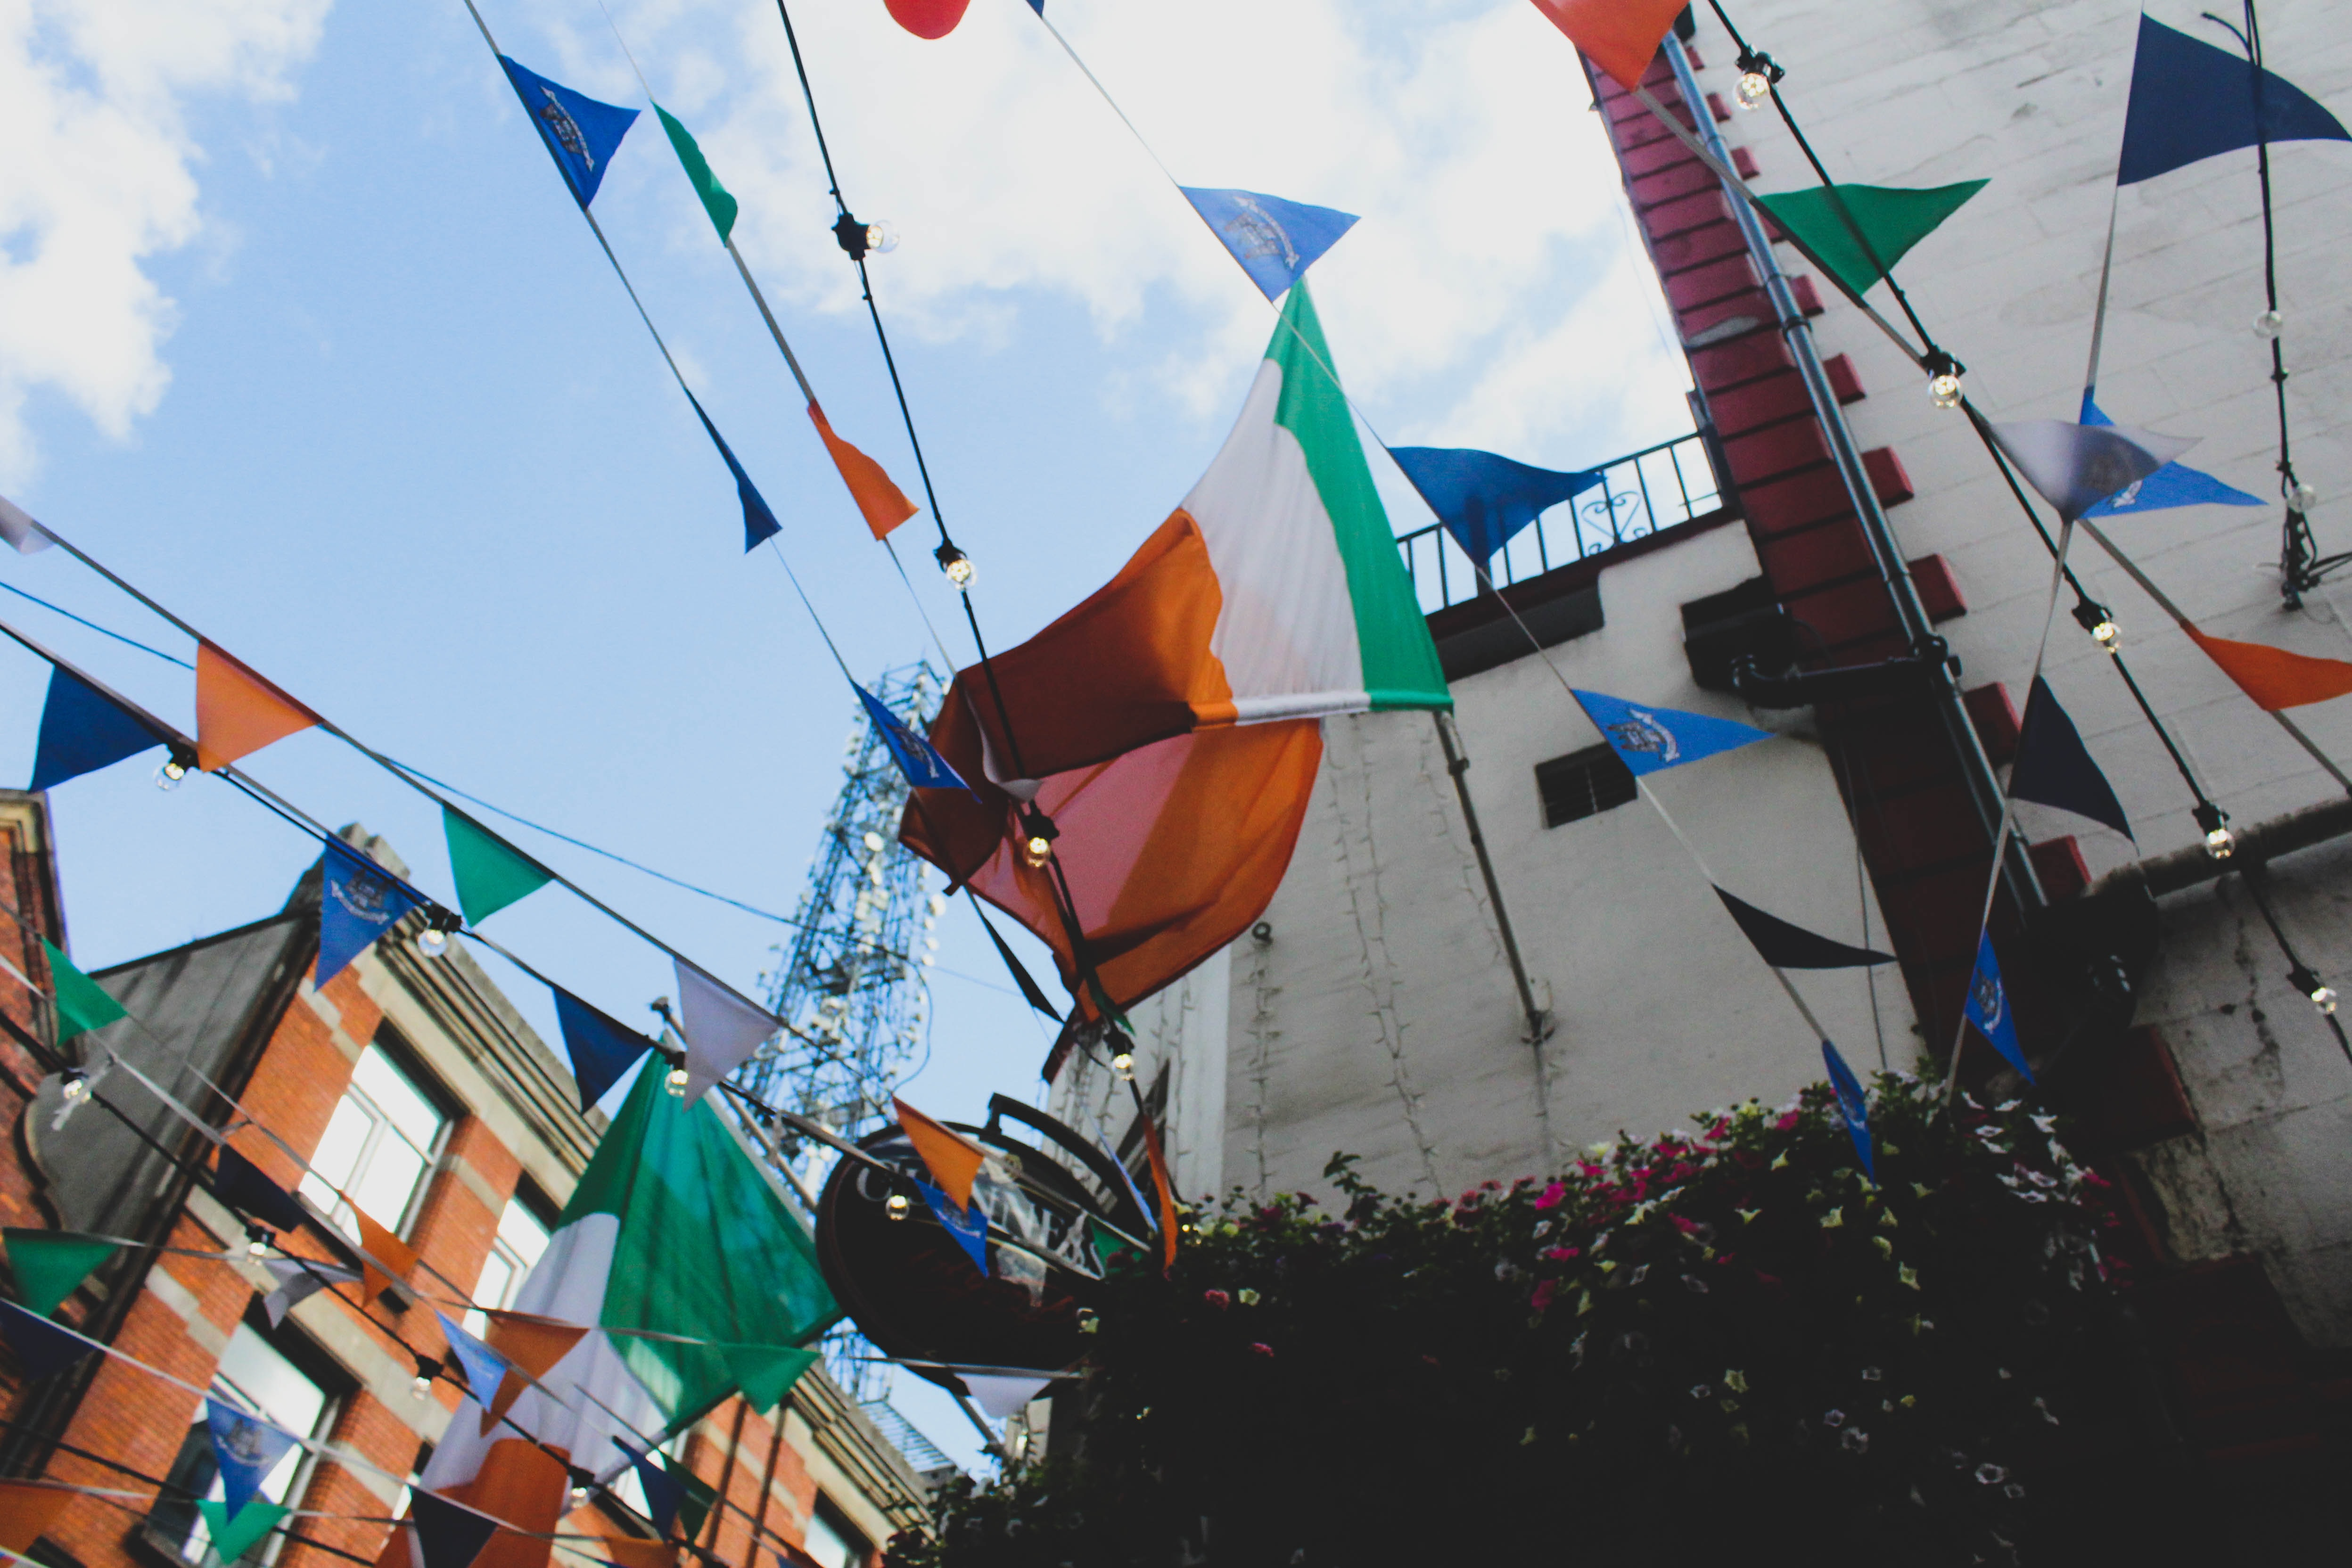 multicolored bunting with stripe flag hang near buildings